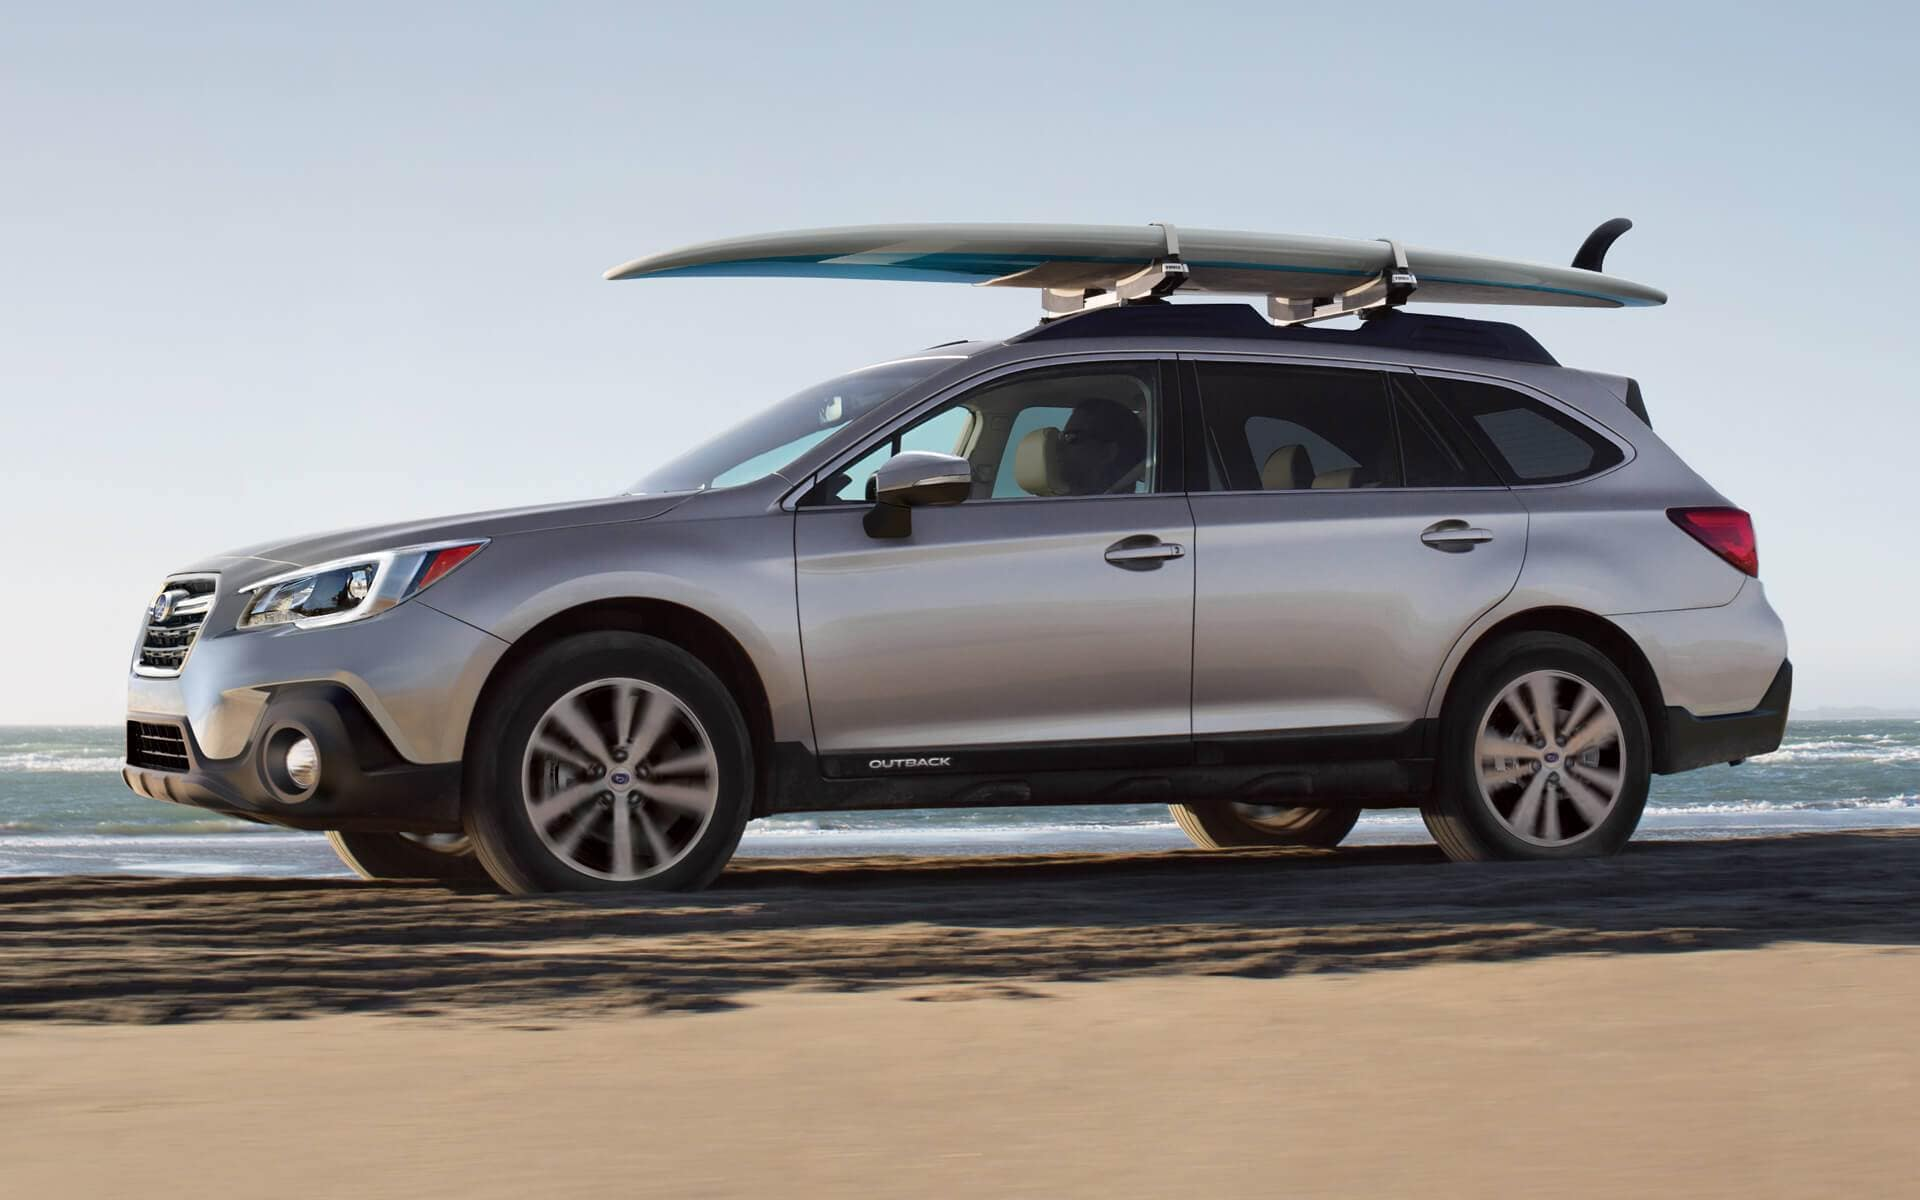 2018 Subaru Outback l Specifications and Info | Randall ...